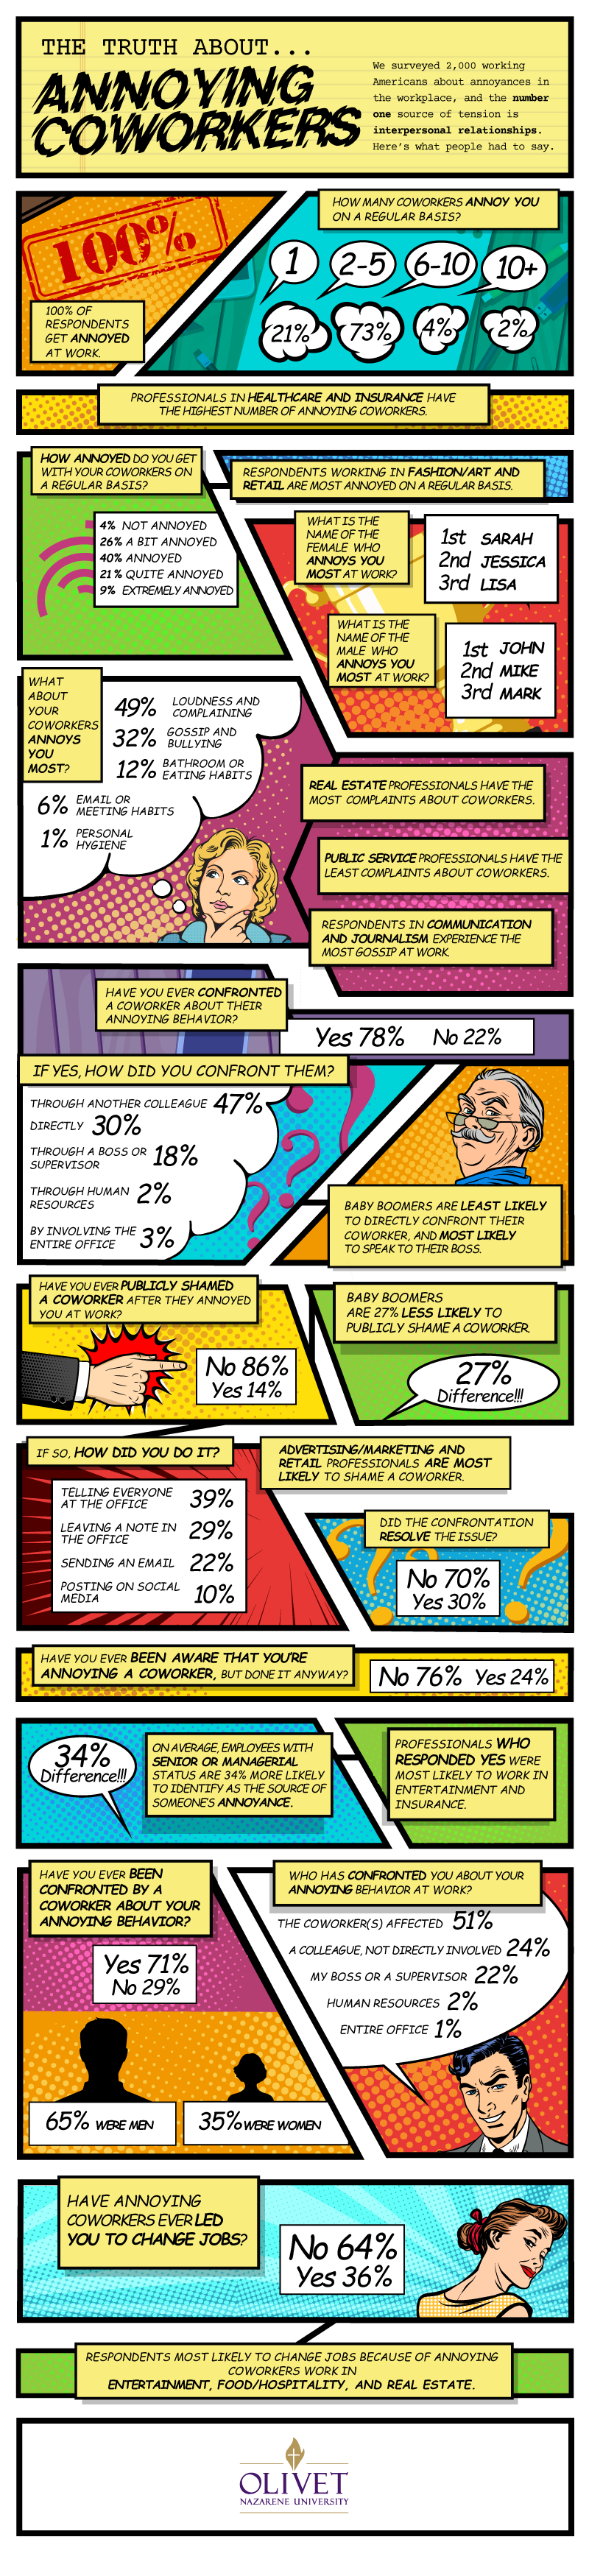 The Case of the Annoying Coworker: How People Deal with Them - Infographic